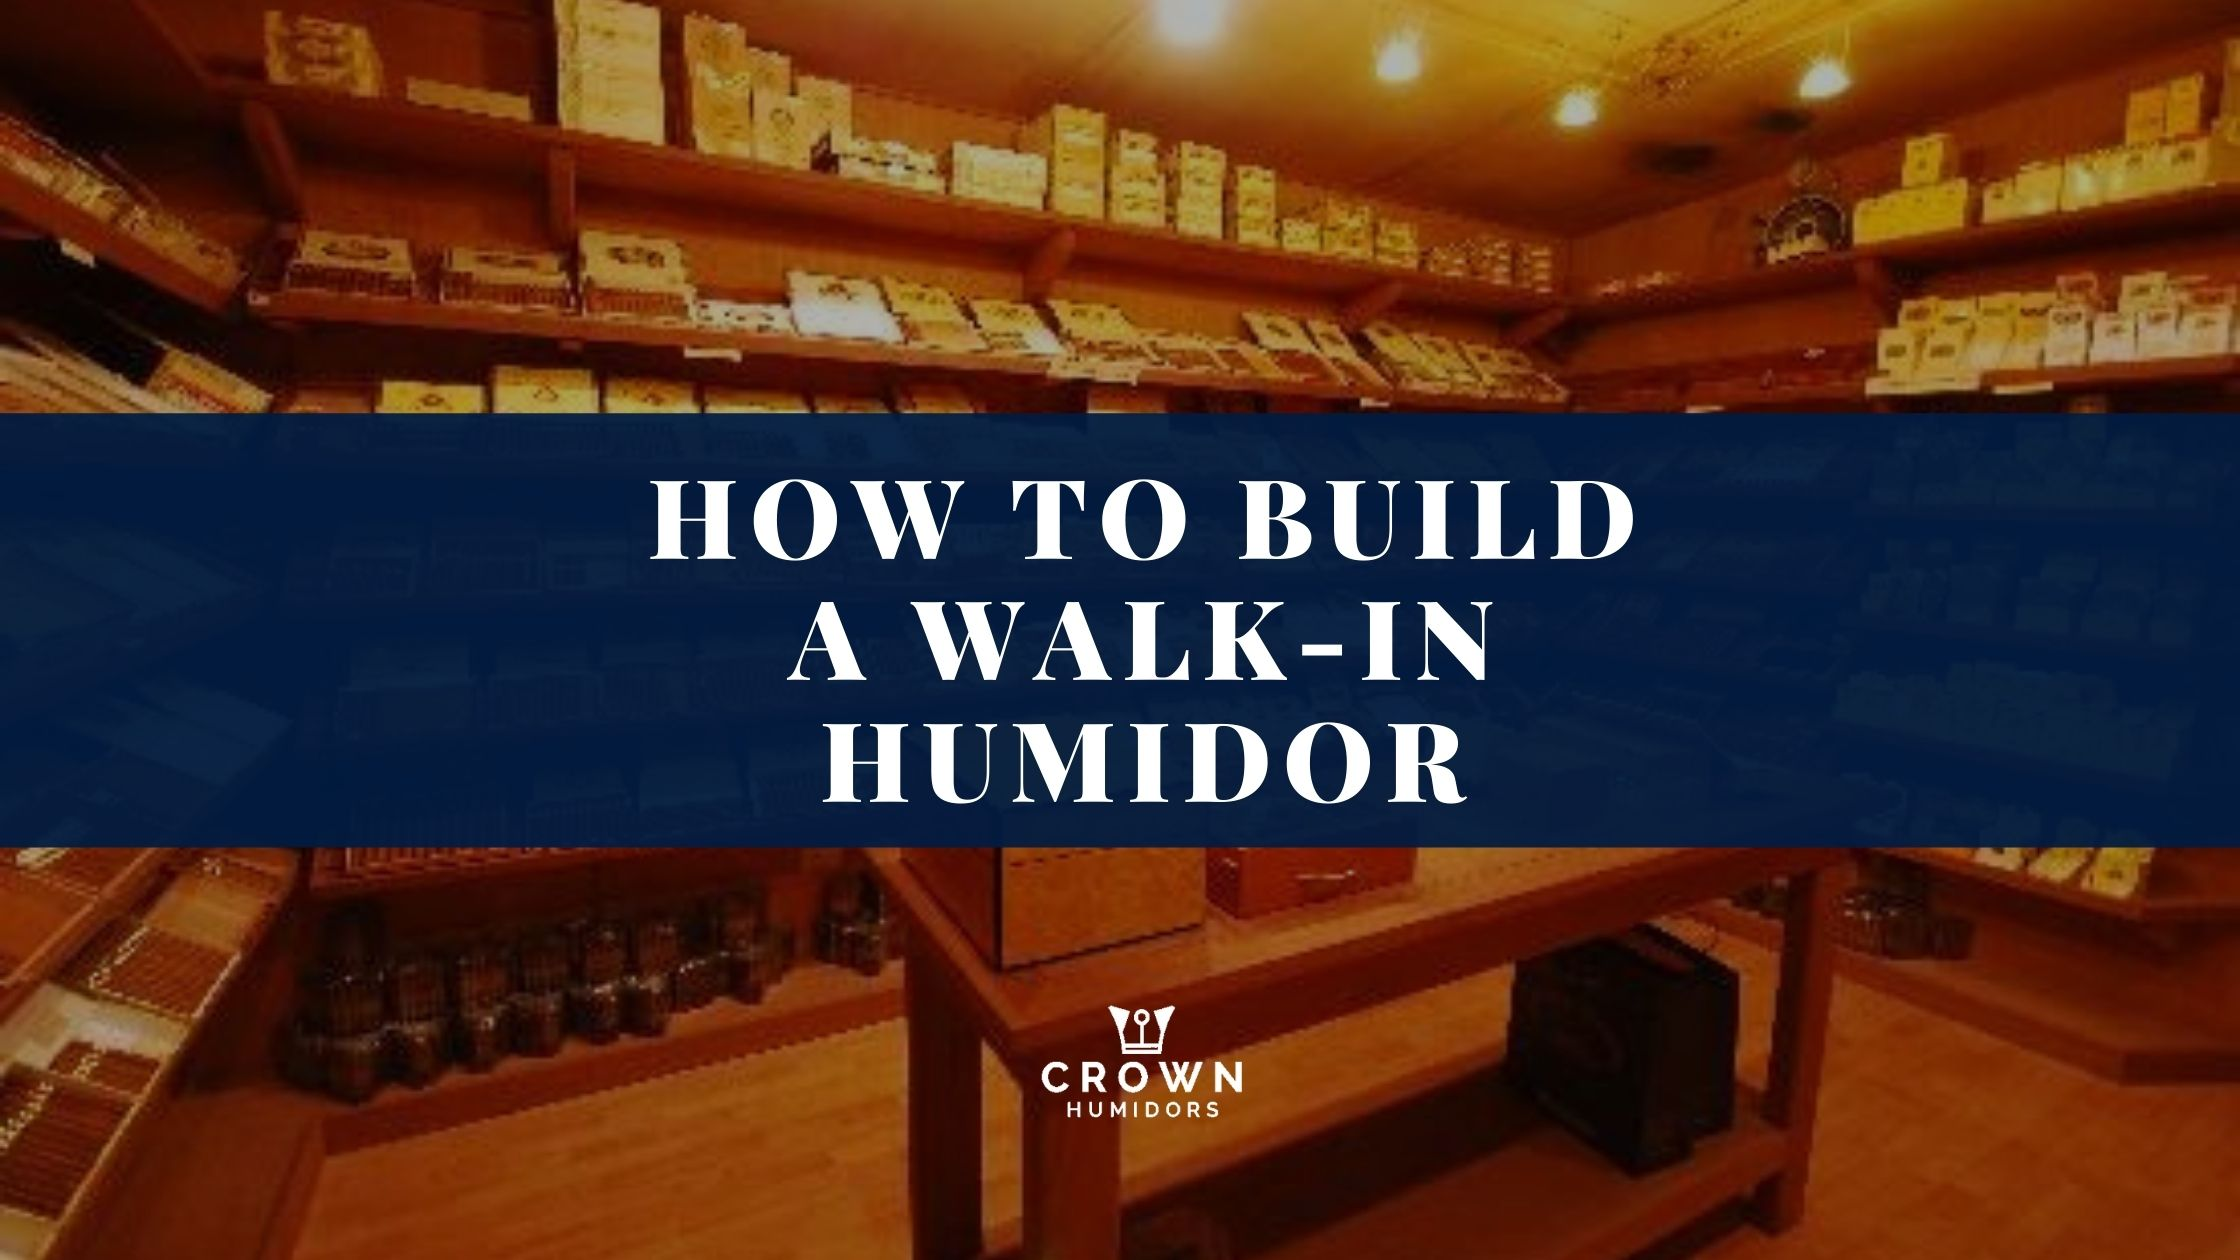 HOW TO BUILD A WALK-IN HUMIDOR